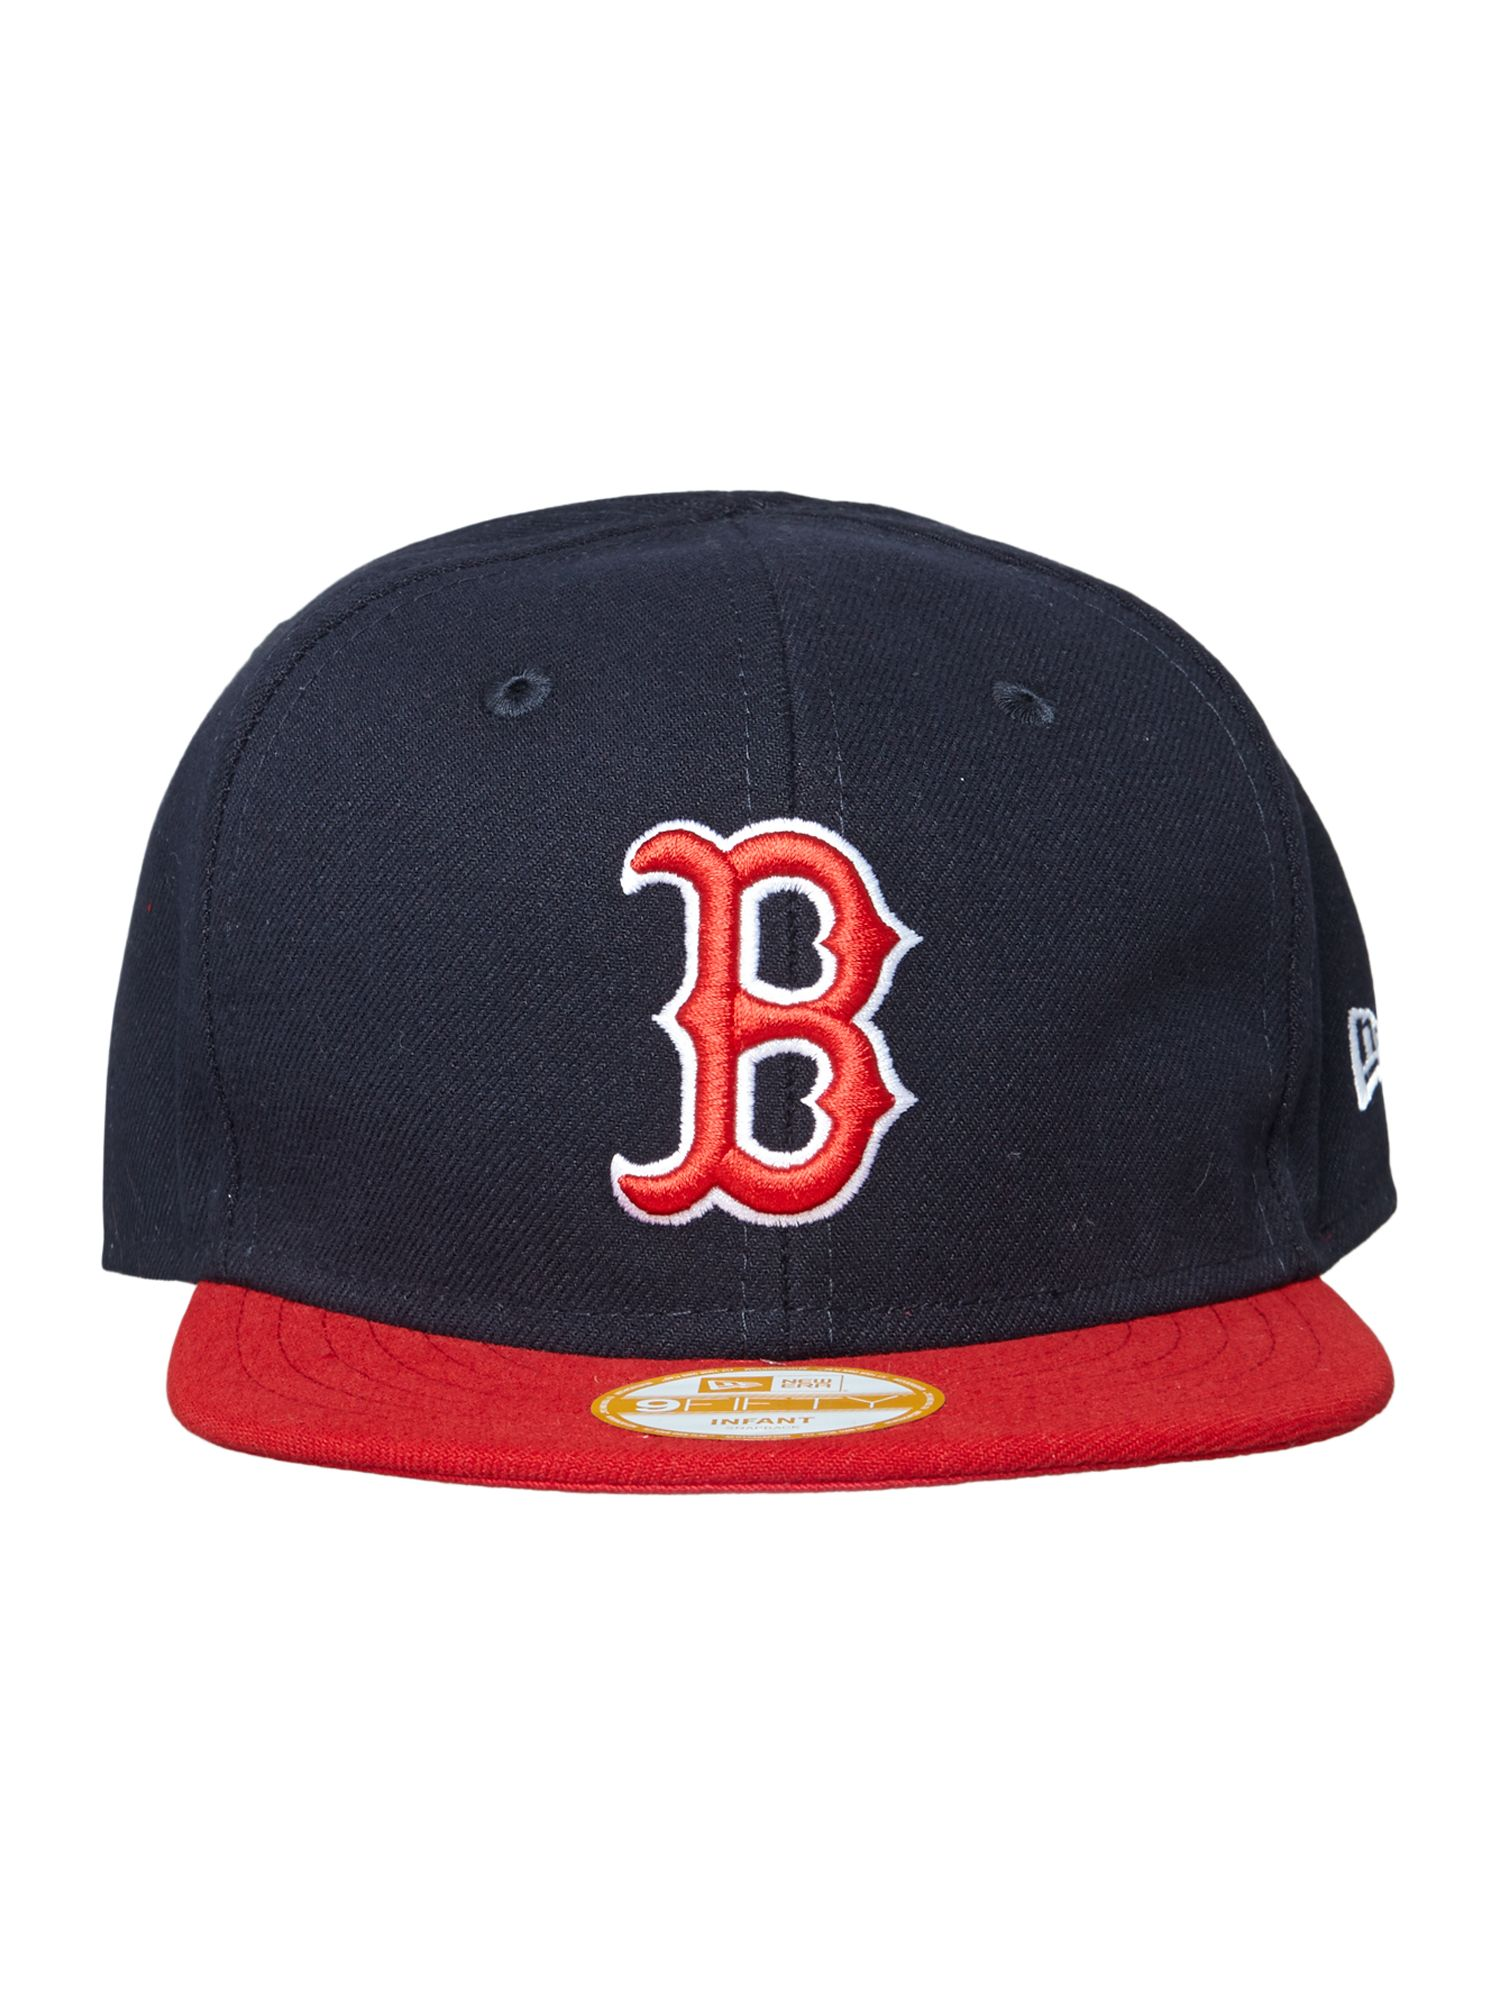 My First 9Fifty Boston hat